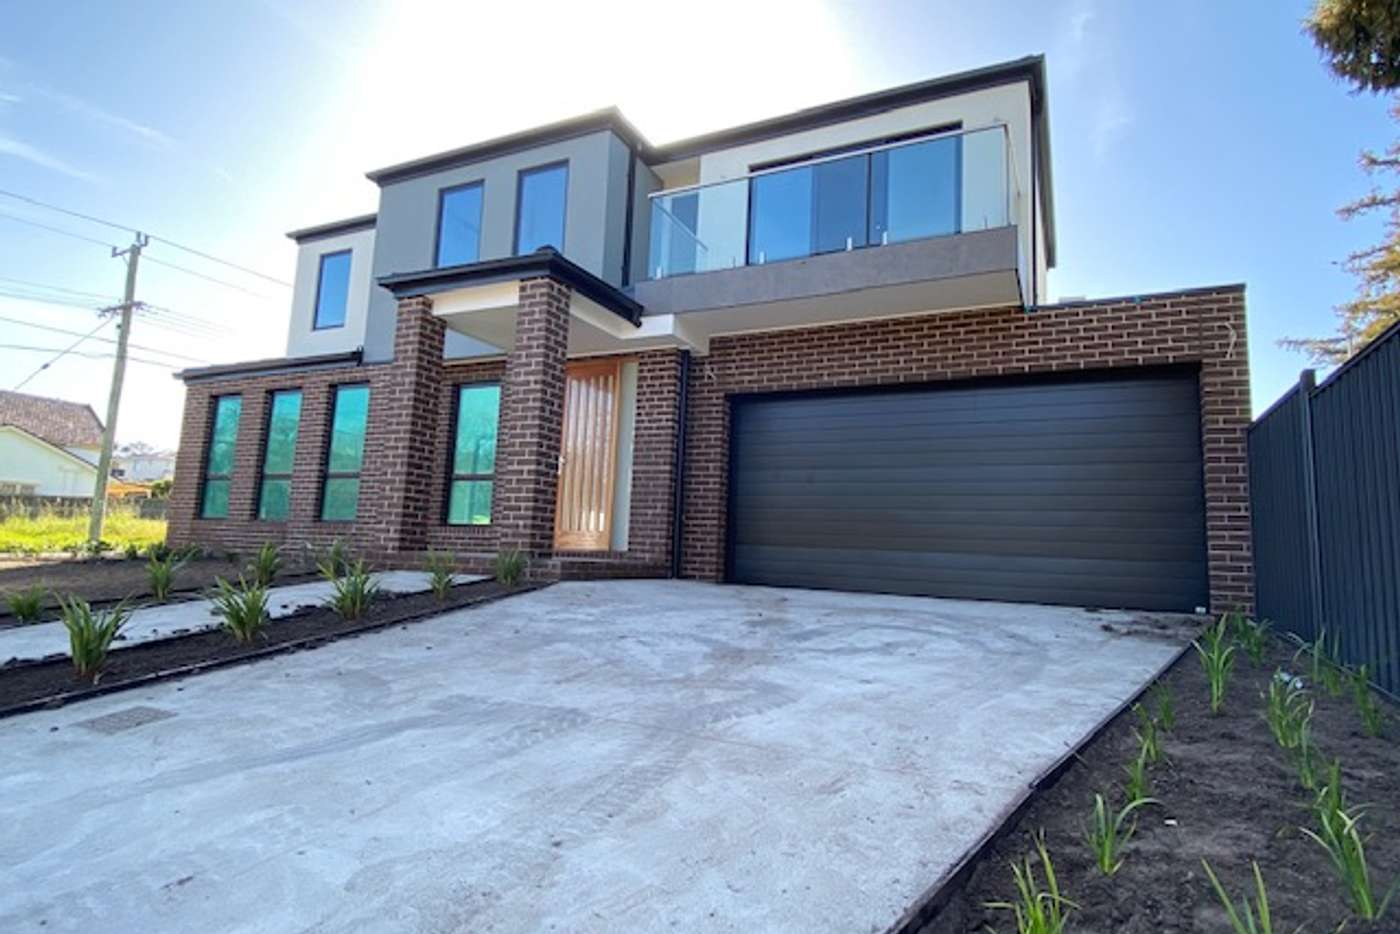 Main view of Homely townhouse listing, 1-4/71 Pultney Street, Dandenong VIC 3175